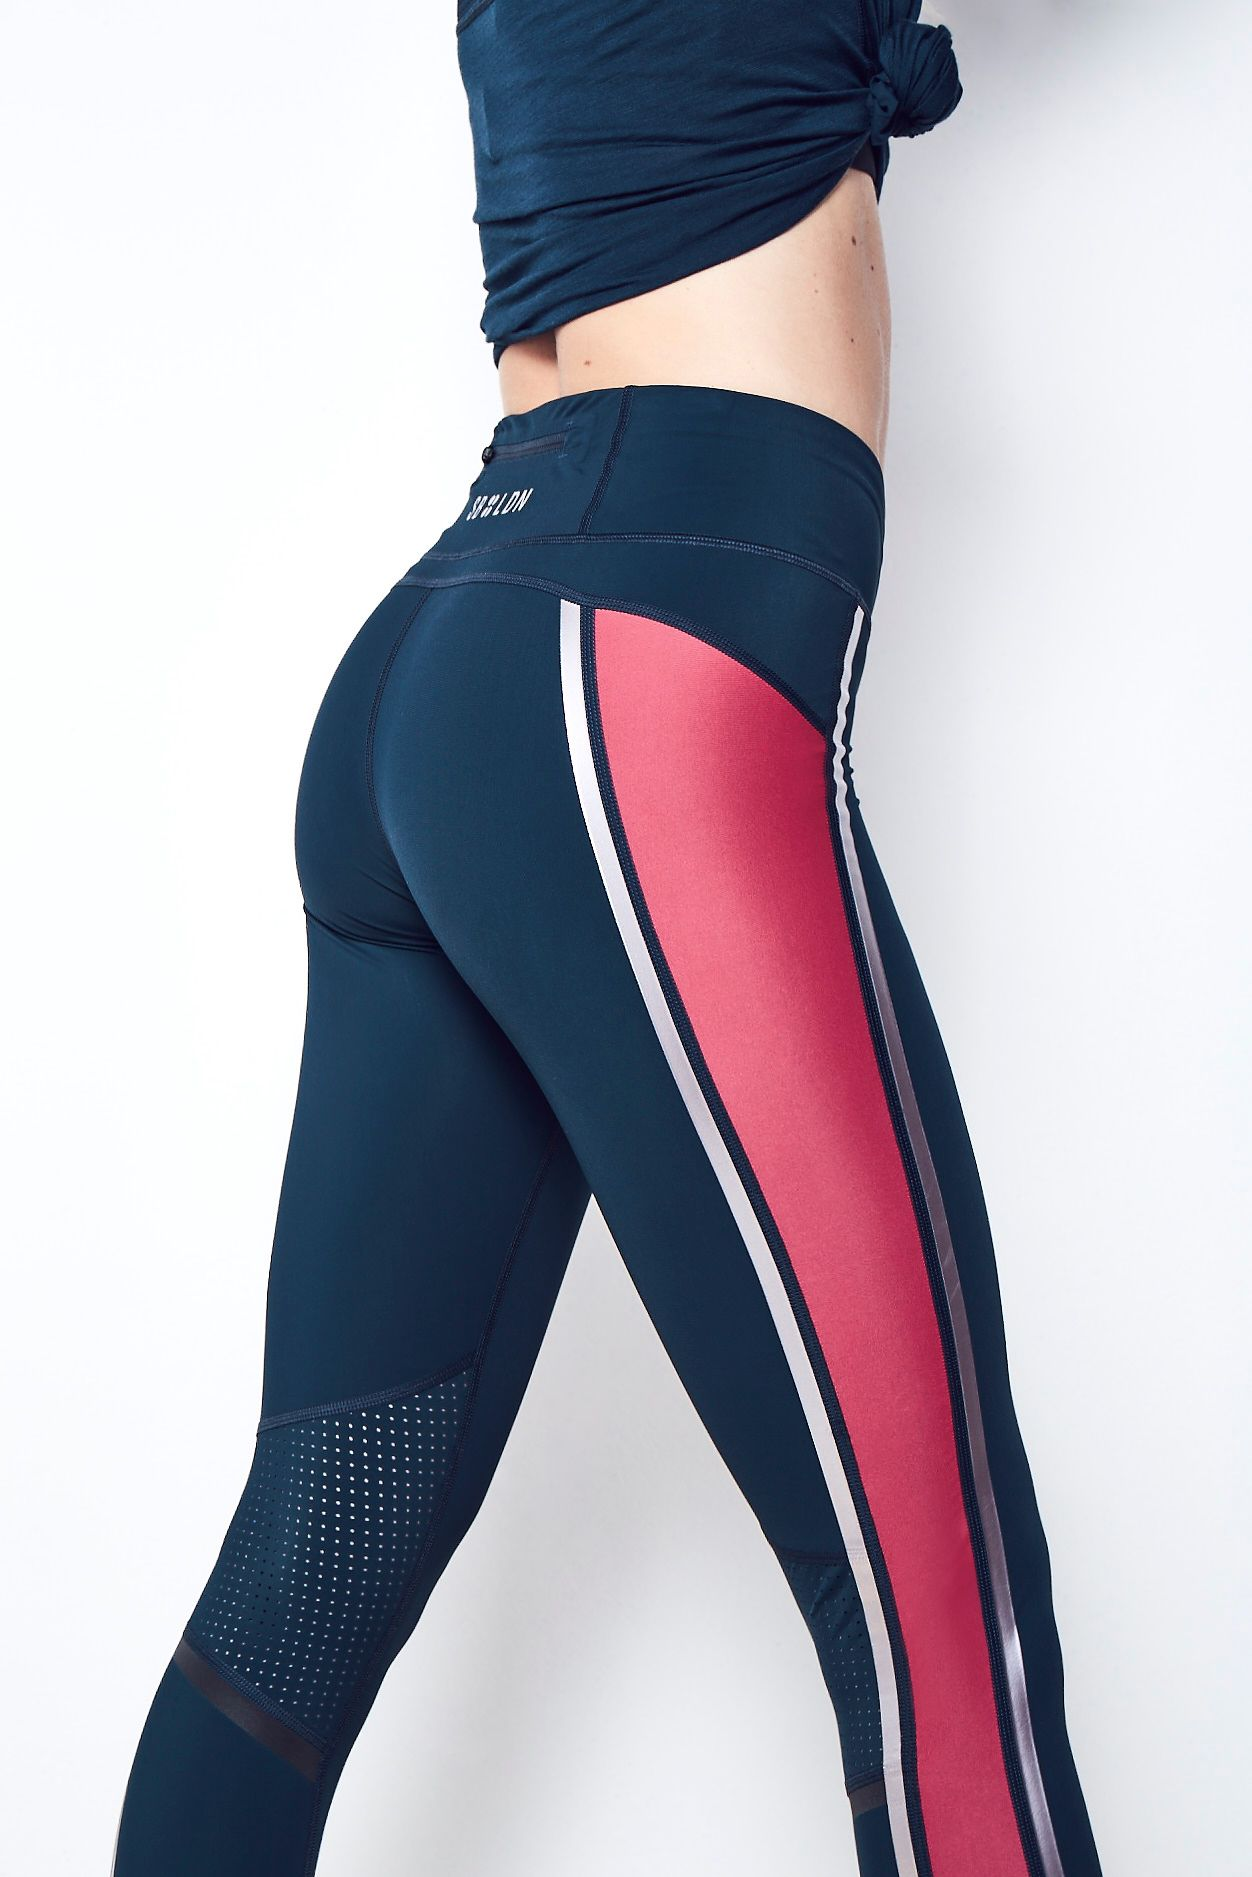 03cc3ad7378a2 Zero Gravity Run Leggings. Bum-sculpting. You bet your ass. Meet the Zero  Gravity Leggings in colour block with the perfect mix of compression and  stretch ...